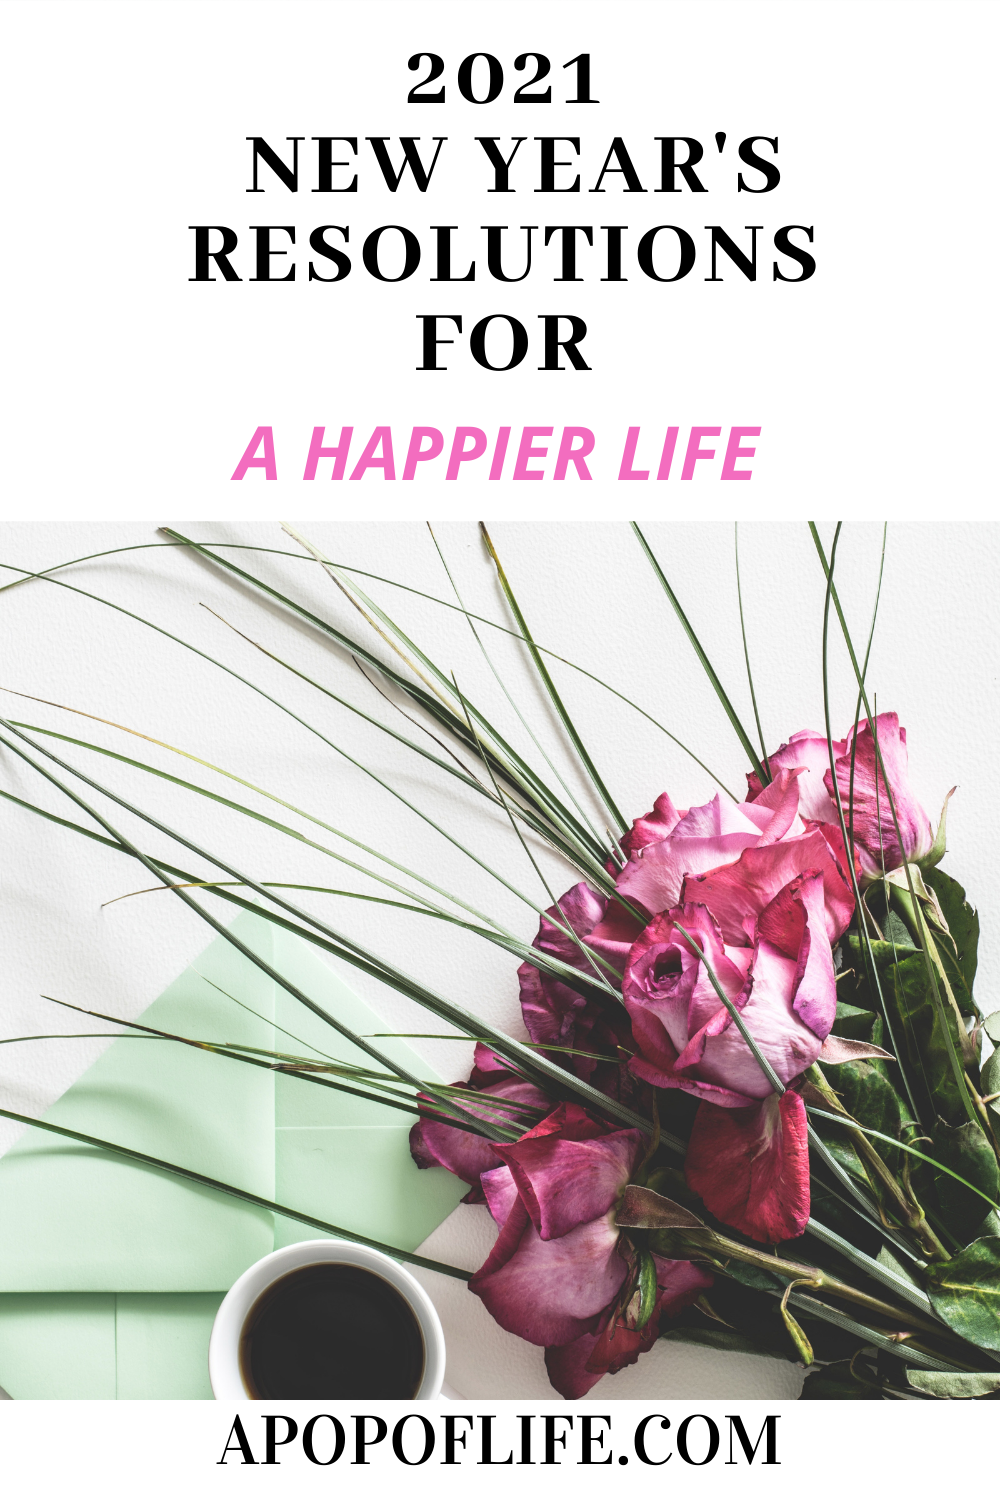 resolutions ideas, new years advice, starting year off right, motivation tips self, manifestation law of attraction, simply living well, life goals future, goal setting vision board, goal setting for new year, fresh starts and new beginnings, new year new me, a pop of life